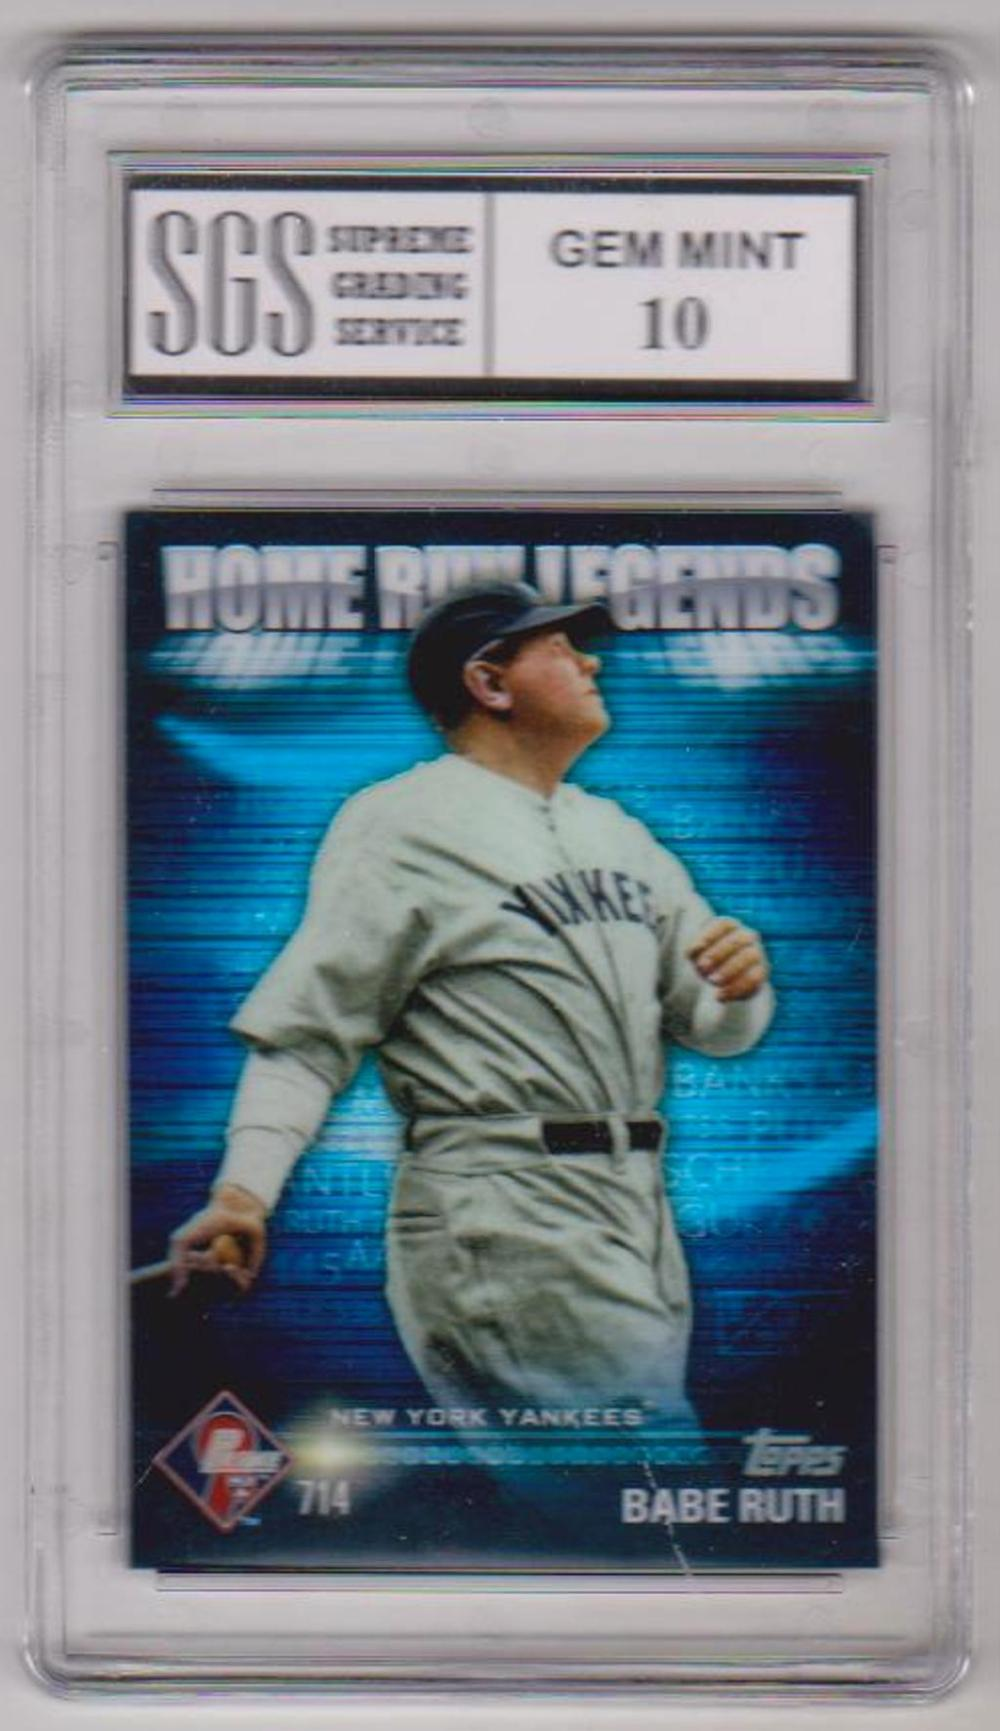 Graded Gem Mint 10 Babe Ruth 2012 Topps Prime 9 Home Run Legends #HRL-2 Card